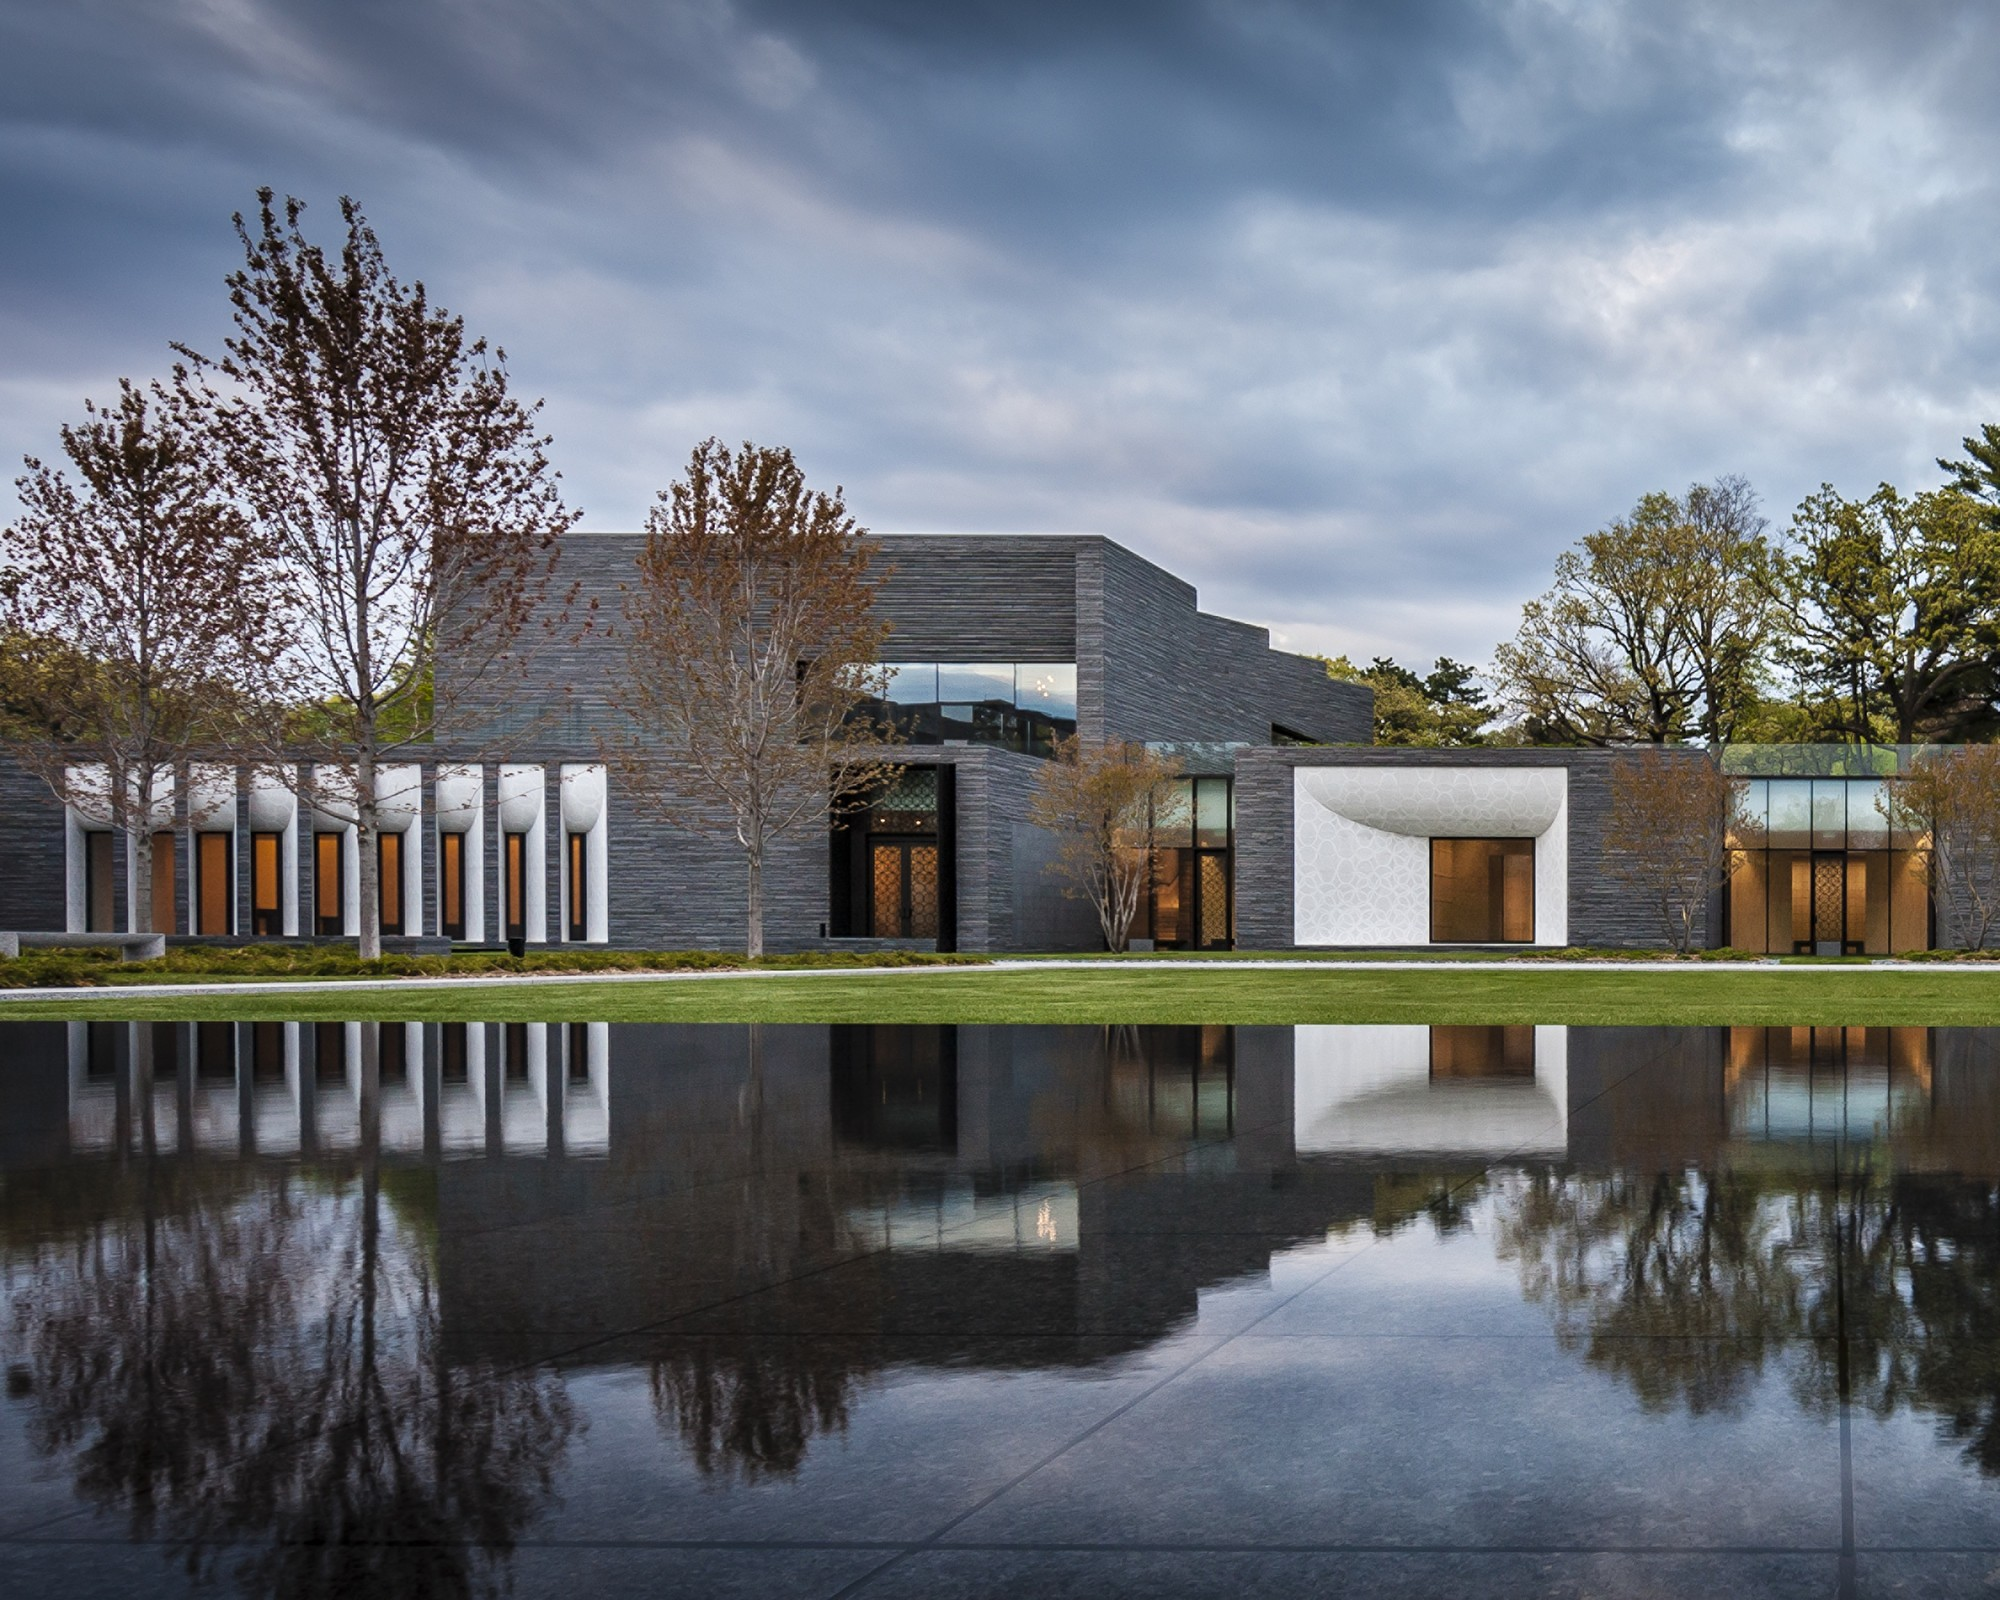 2014 AIA Institute Honor Awards for Architecture, Lakewood Cemetery Garden Mausoleum / HGA Architects and Engineers © Paul Crosby Photography